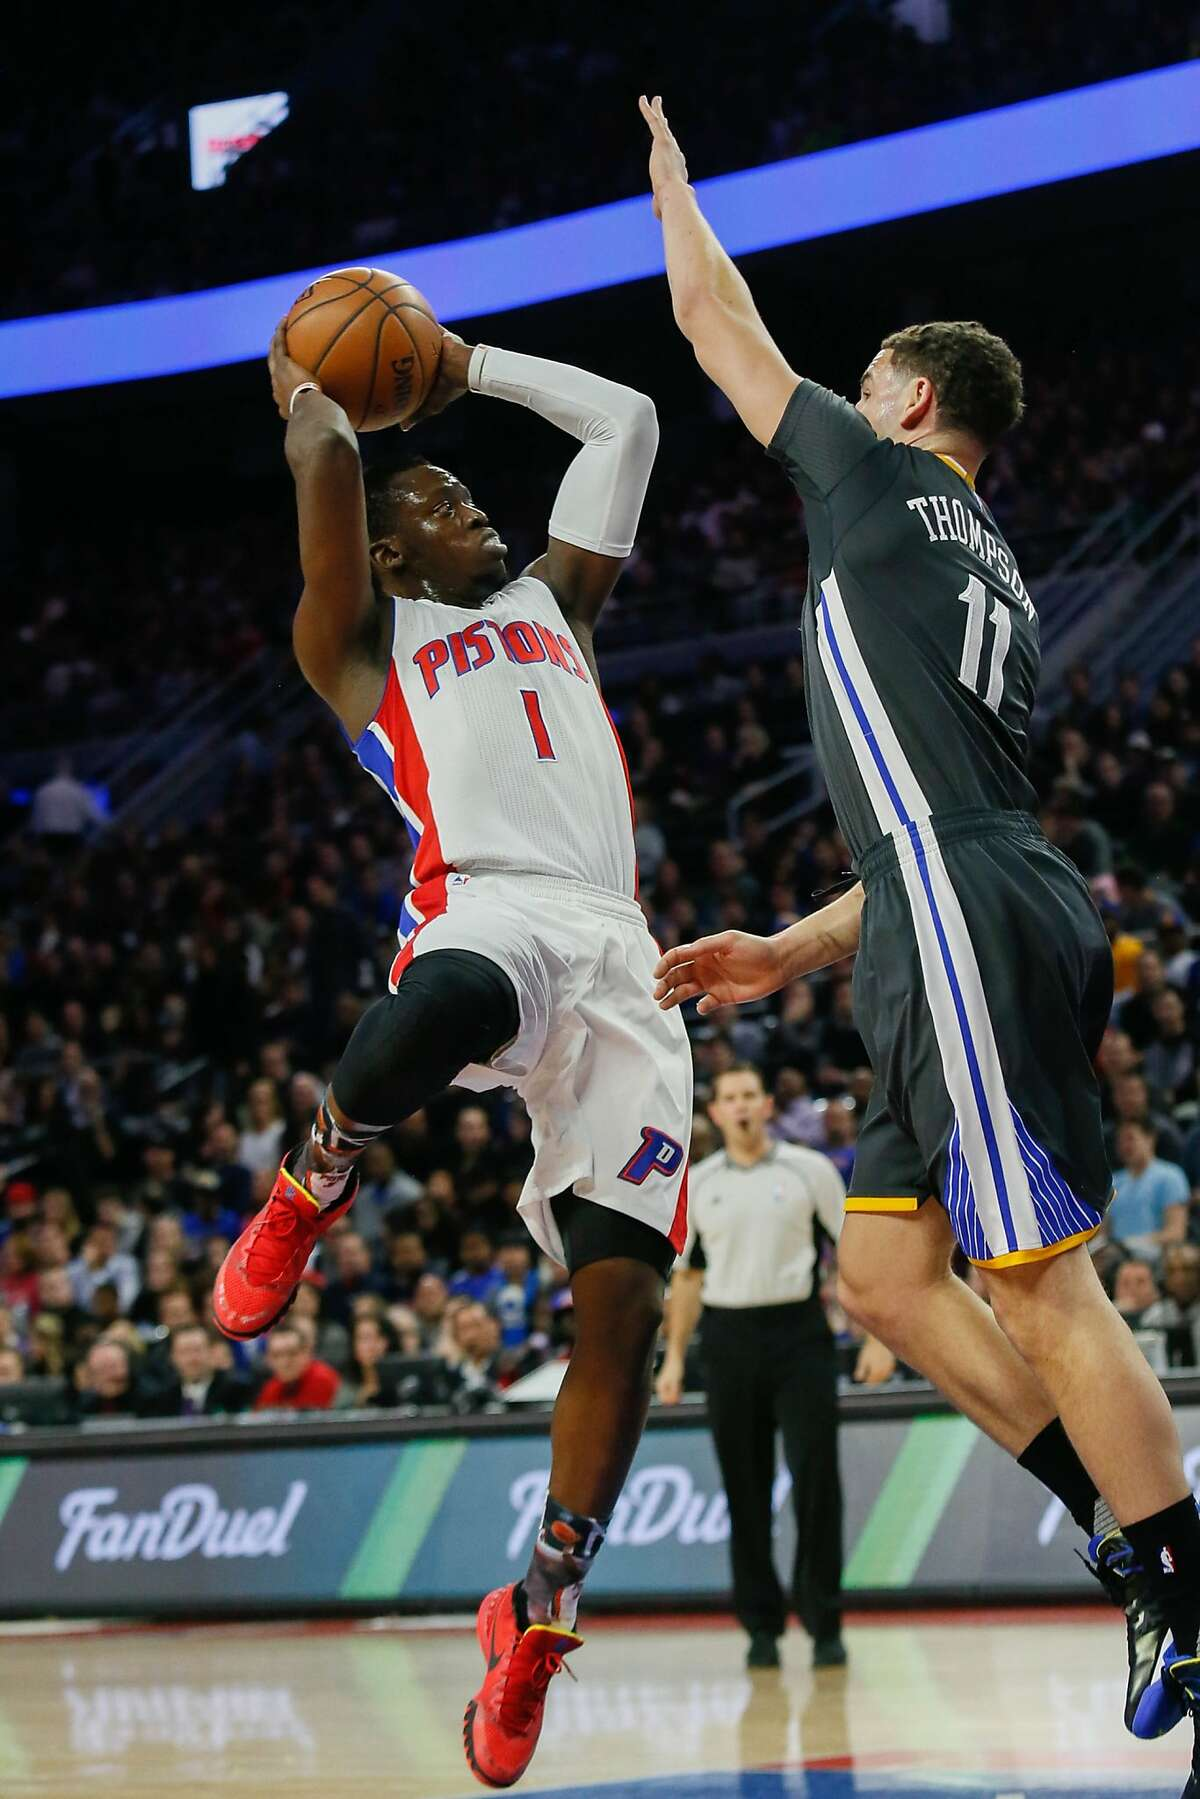 The Detroit Pistons' Reggie Jackson shoots against the Golden State Warriors' Klay Thompson during the first quarter at the Palace of Auburn Hills on Saturday, Jan. 16, 2016, in Auburn Hills, Mich. (Kimberly P. Mitchell/Detroit Free Press/TNS)